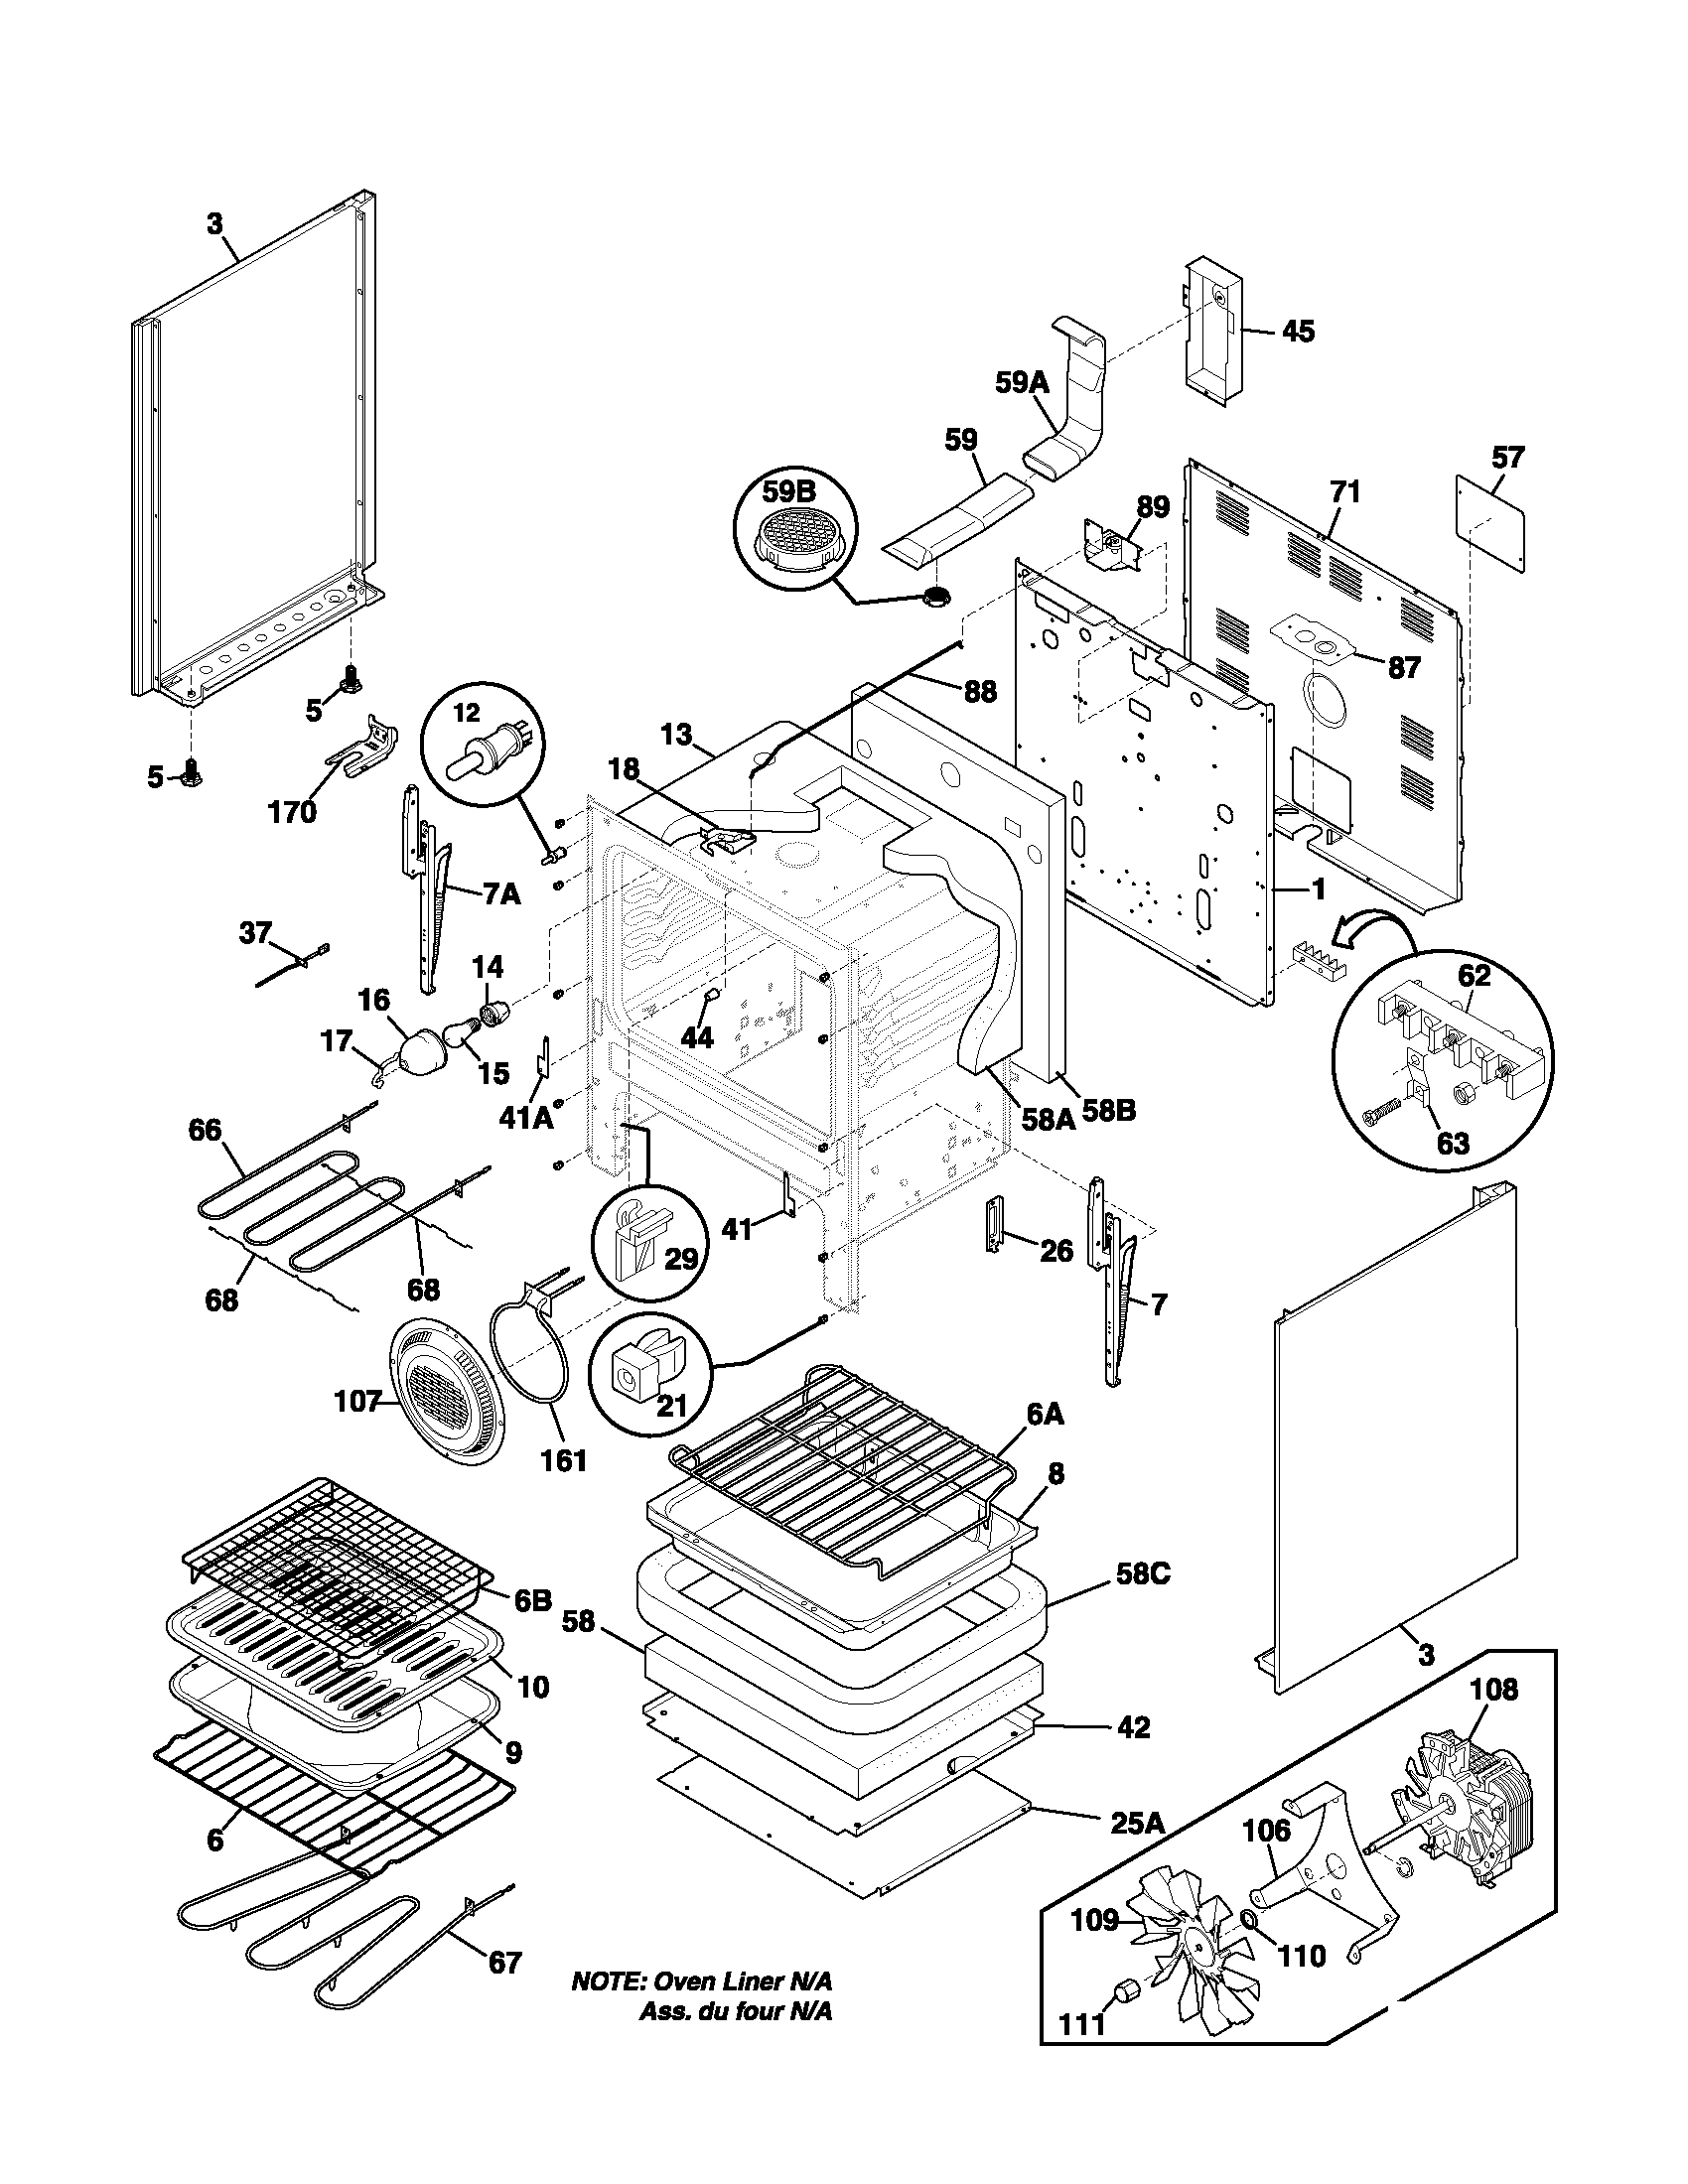 Xbox One Power Cord Wiring Diagram furthermore Wiring Diagram For Amana Dryer together with Whirlpool Ice Maker Wiring Diagram likewise Whirlpool Trash  pactor Parts Diagram moreover Wiring Diagram For Danfoss  pressor. on u line ice maker wiring diagram